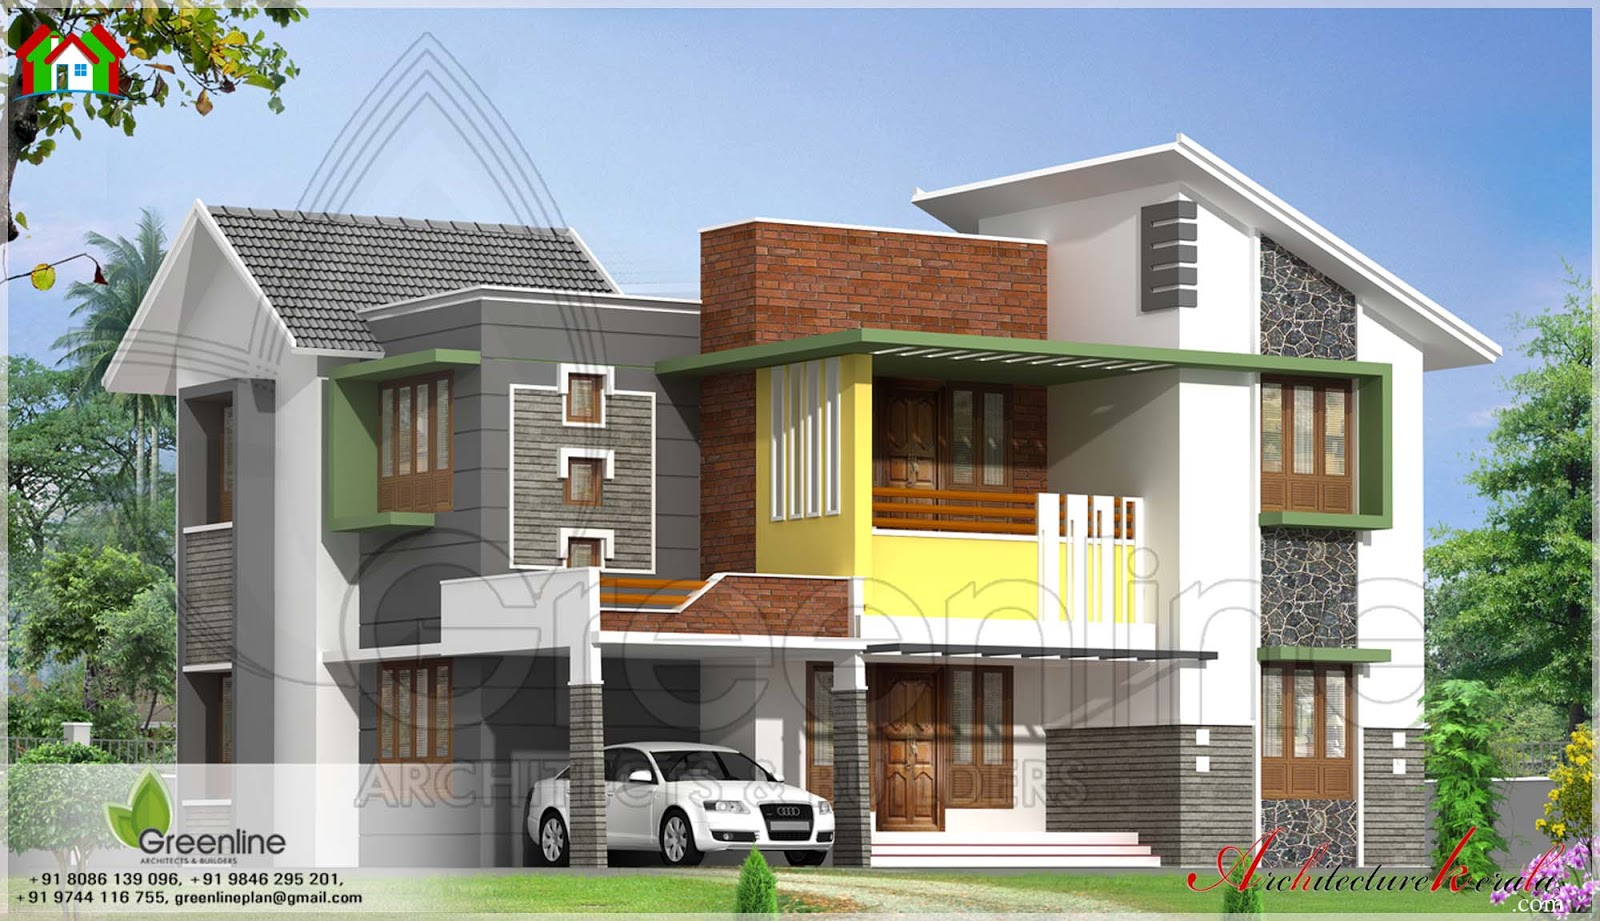 Modern style house elevation architecture kerala for Home designs kerala architects